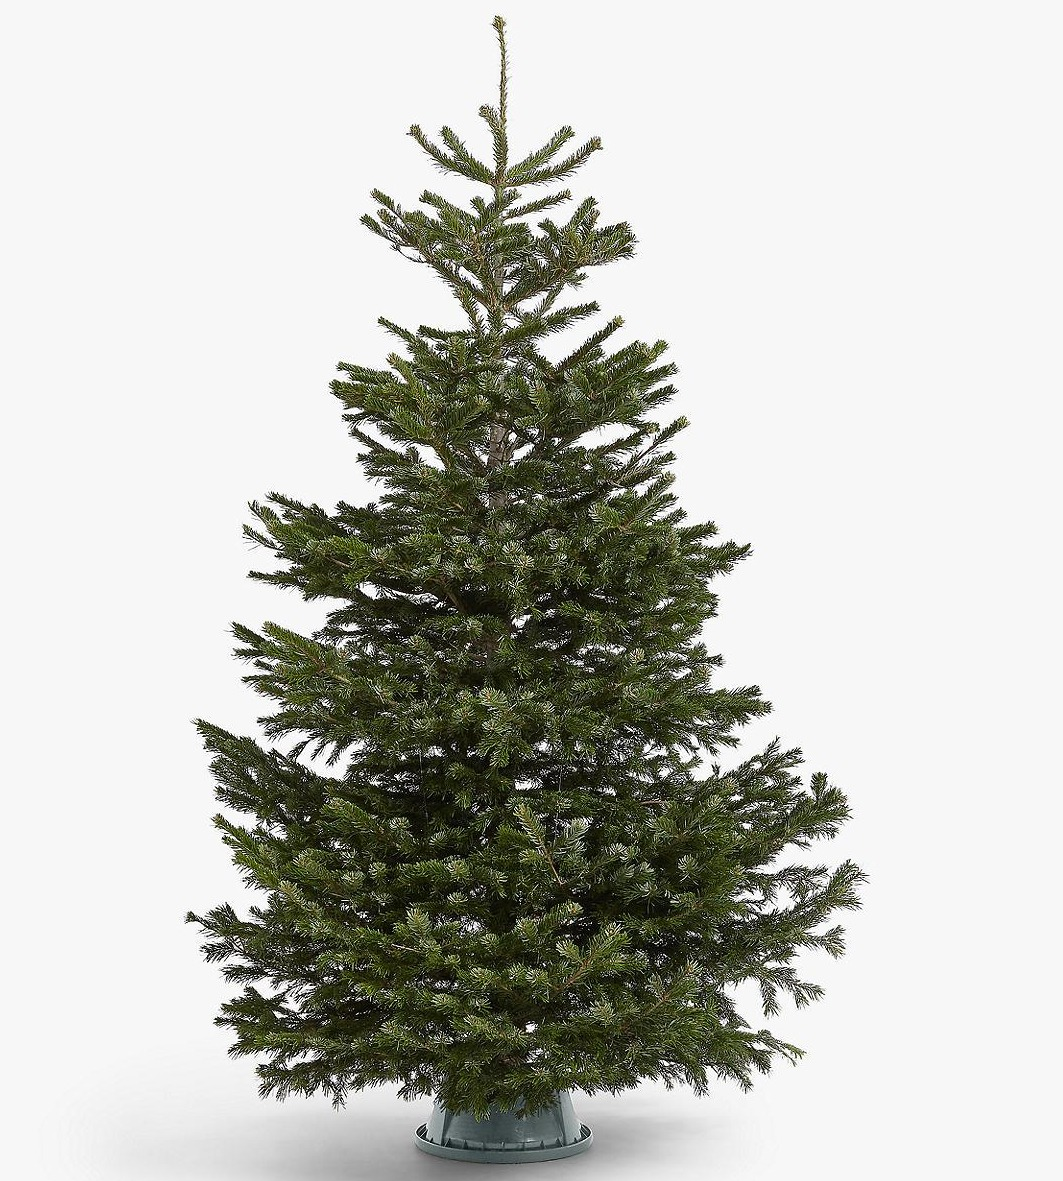 If you don't mind spending a bit more, John Lewis will be selling real Christmas trees from £75 this year